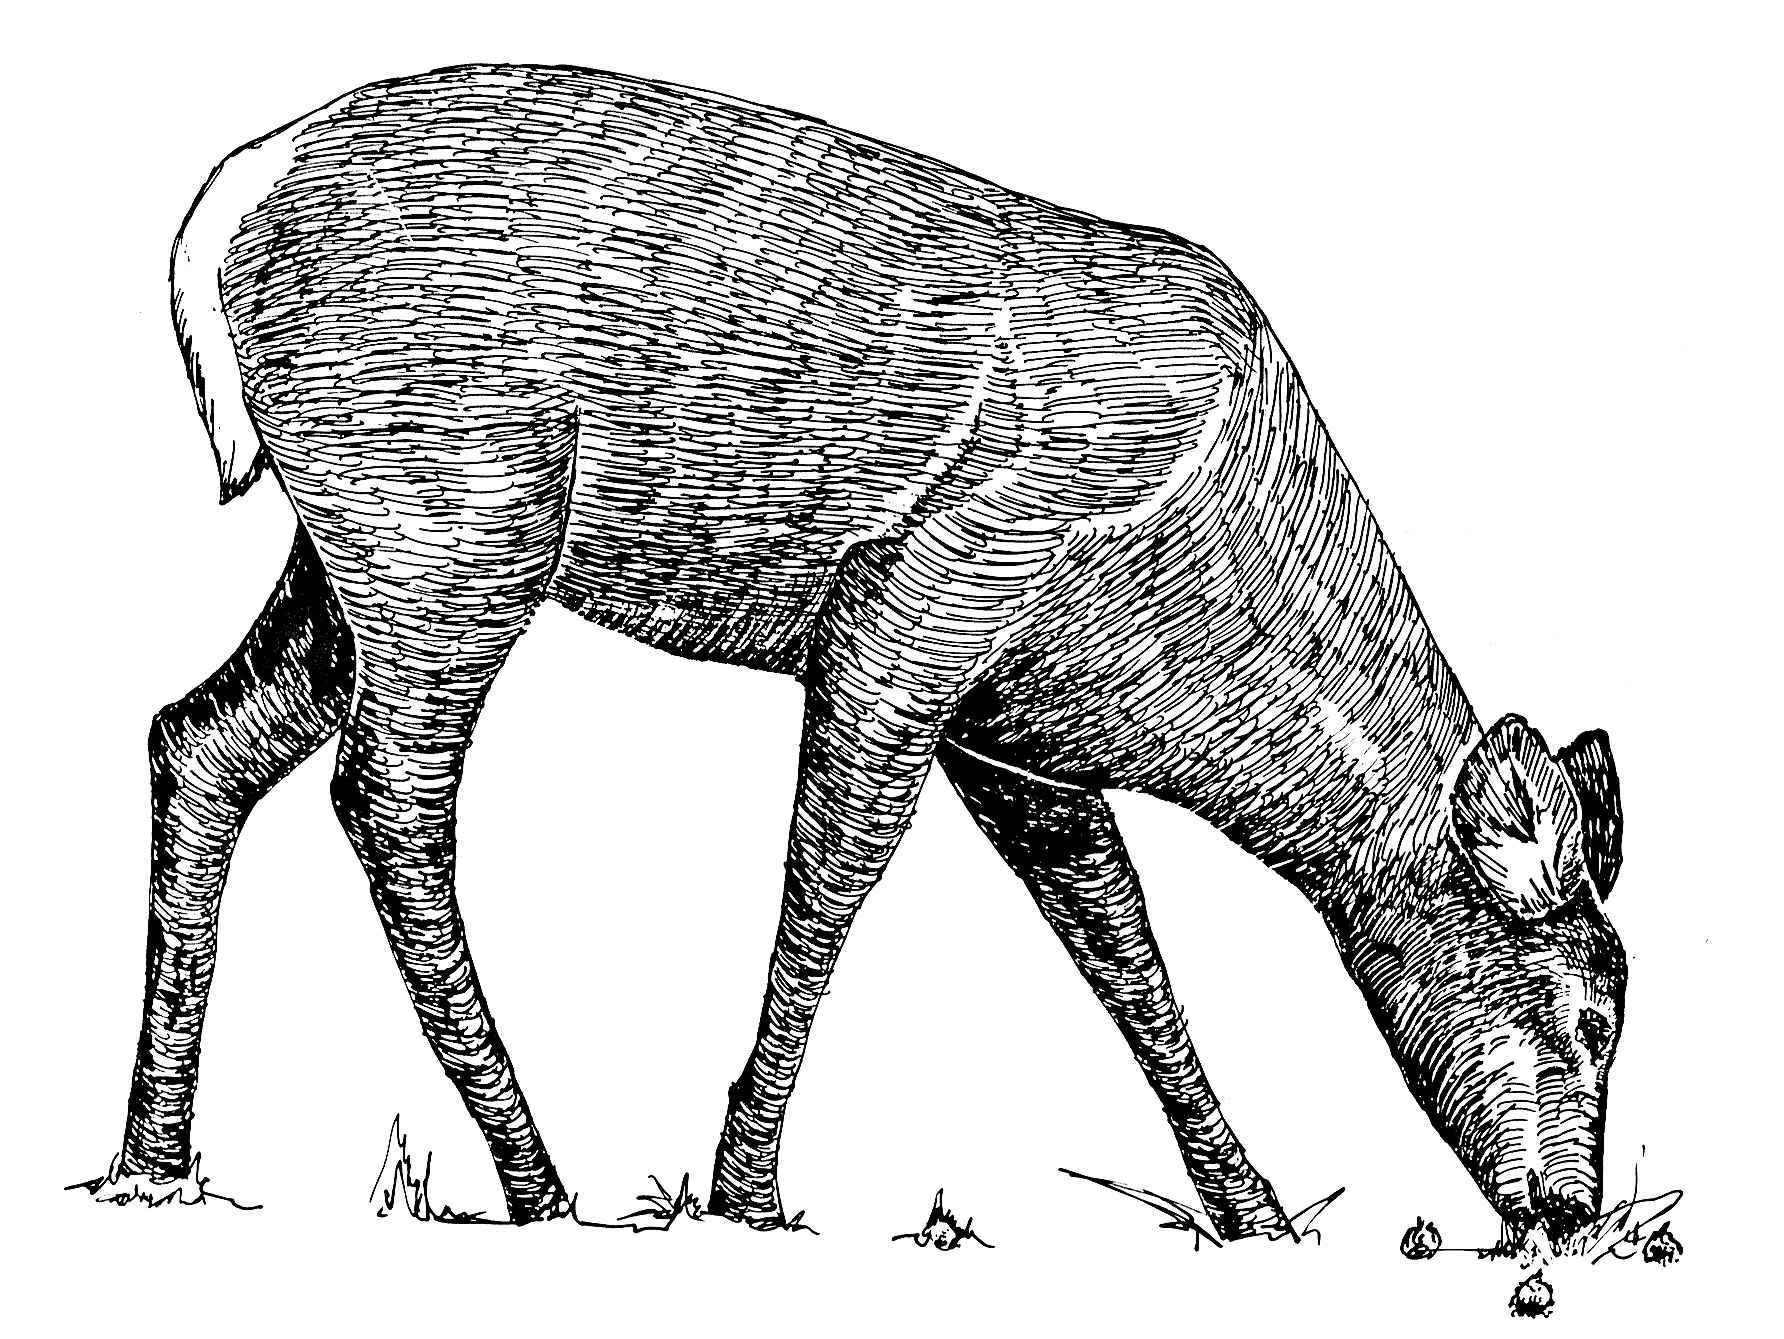 Line Art Animals Drawings : File animal line art drawing g wikimedia commons